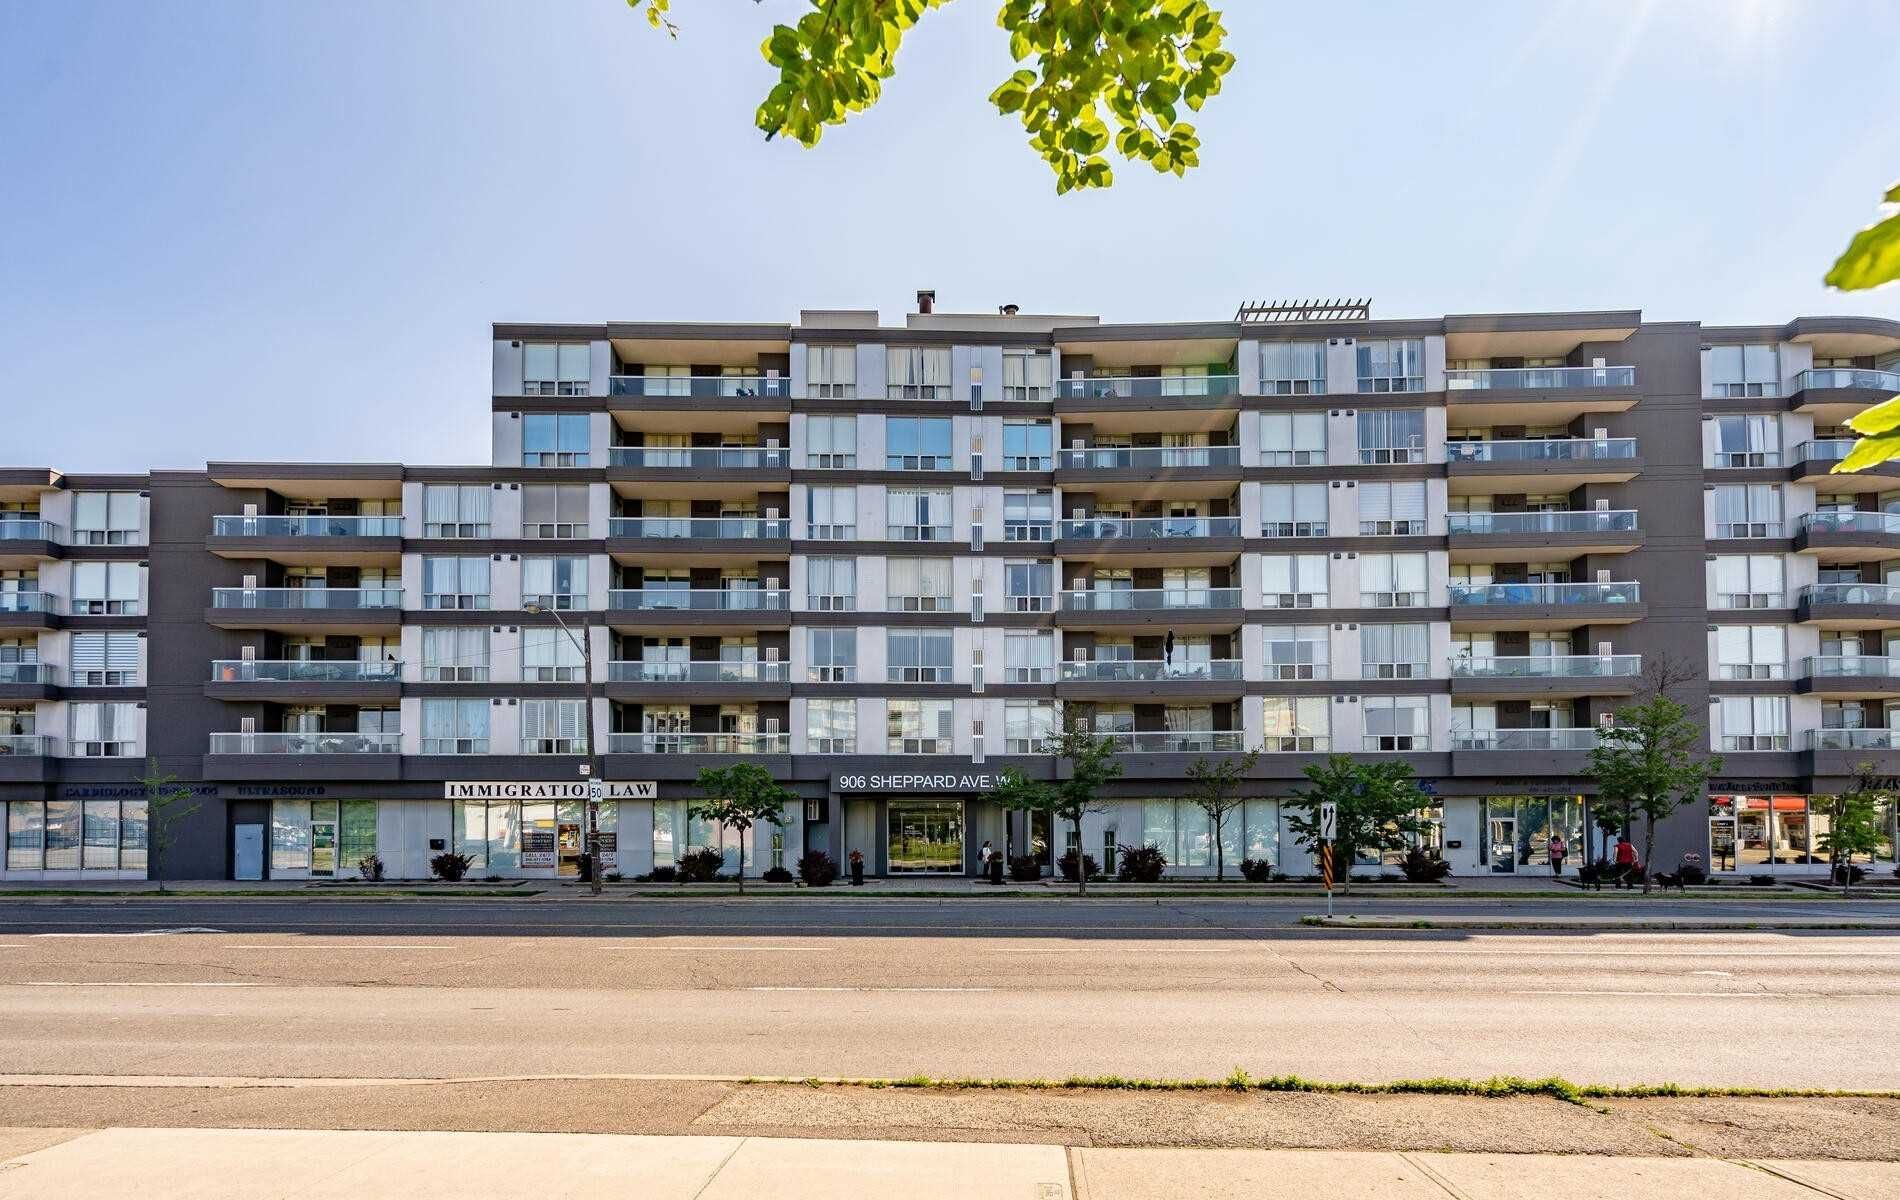 906 Sheppard Ave W, unit 302 for sale in Toronto - image #2